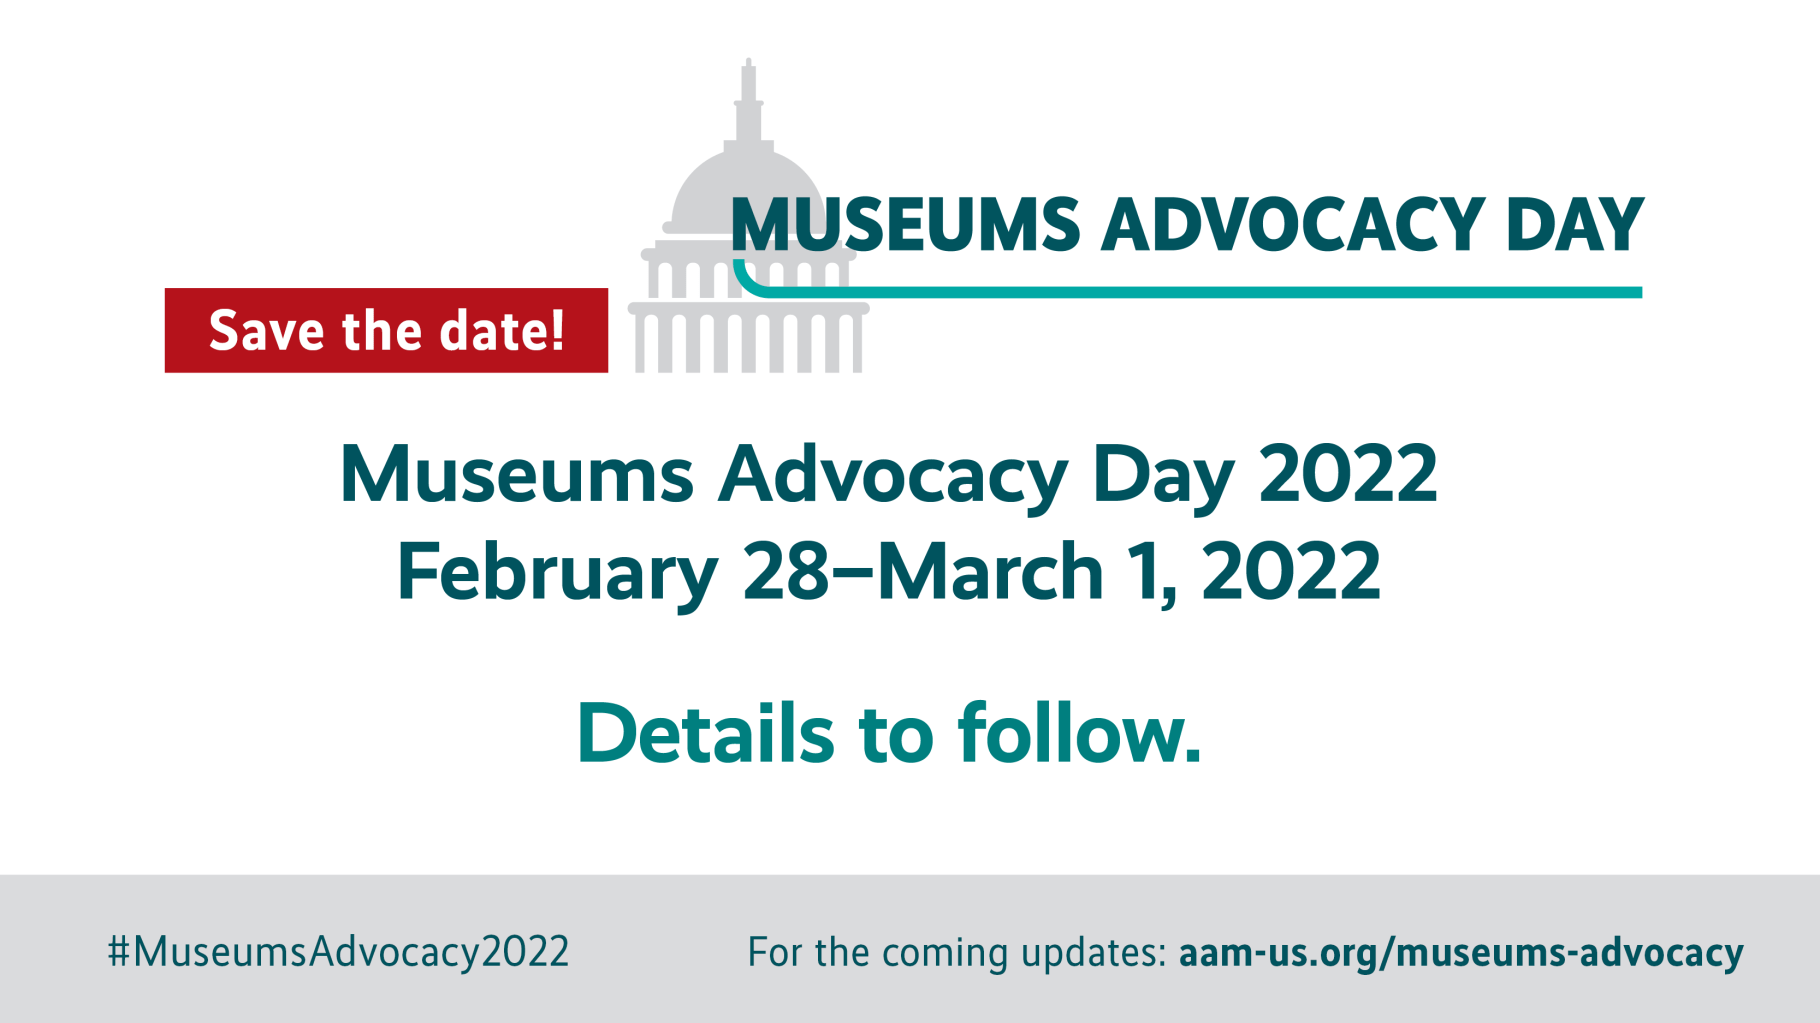 Museums Advocacy Day 2022 Save the Date - Feb. 28 - March 1, details to follow.